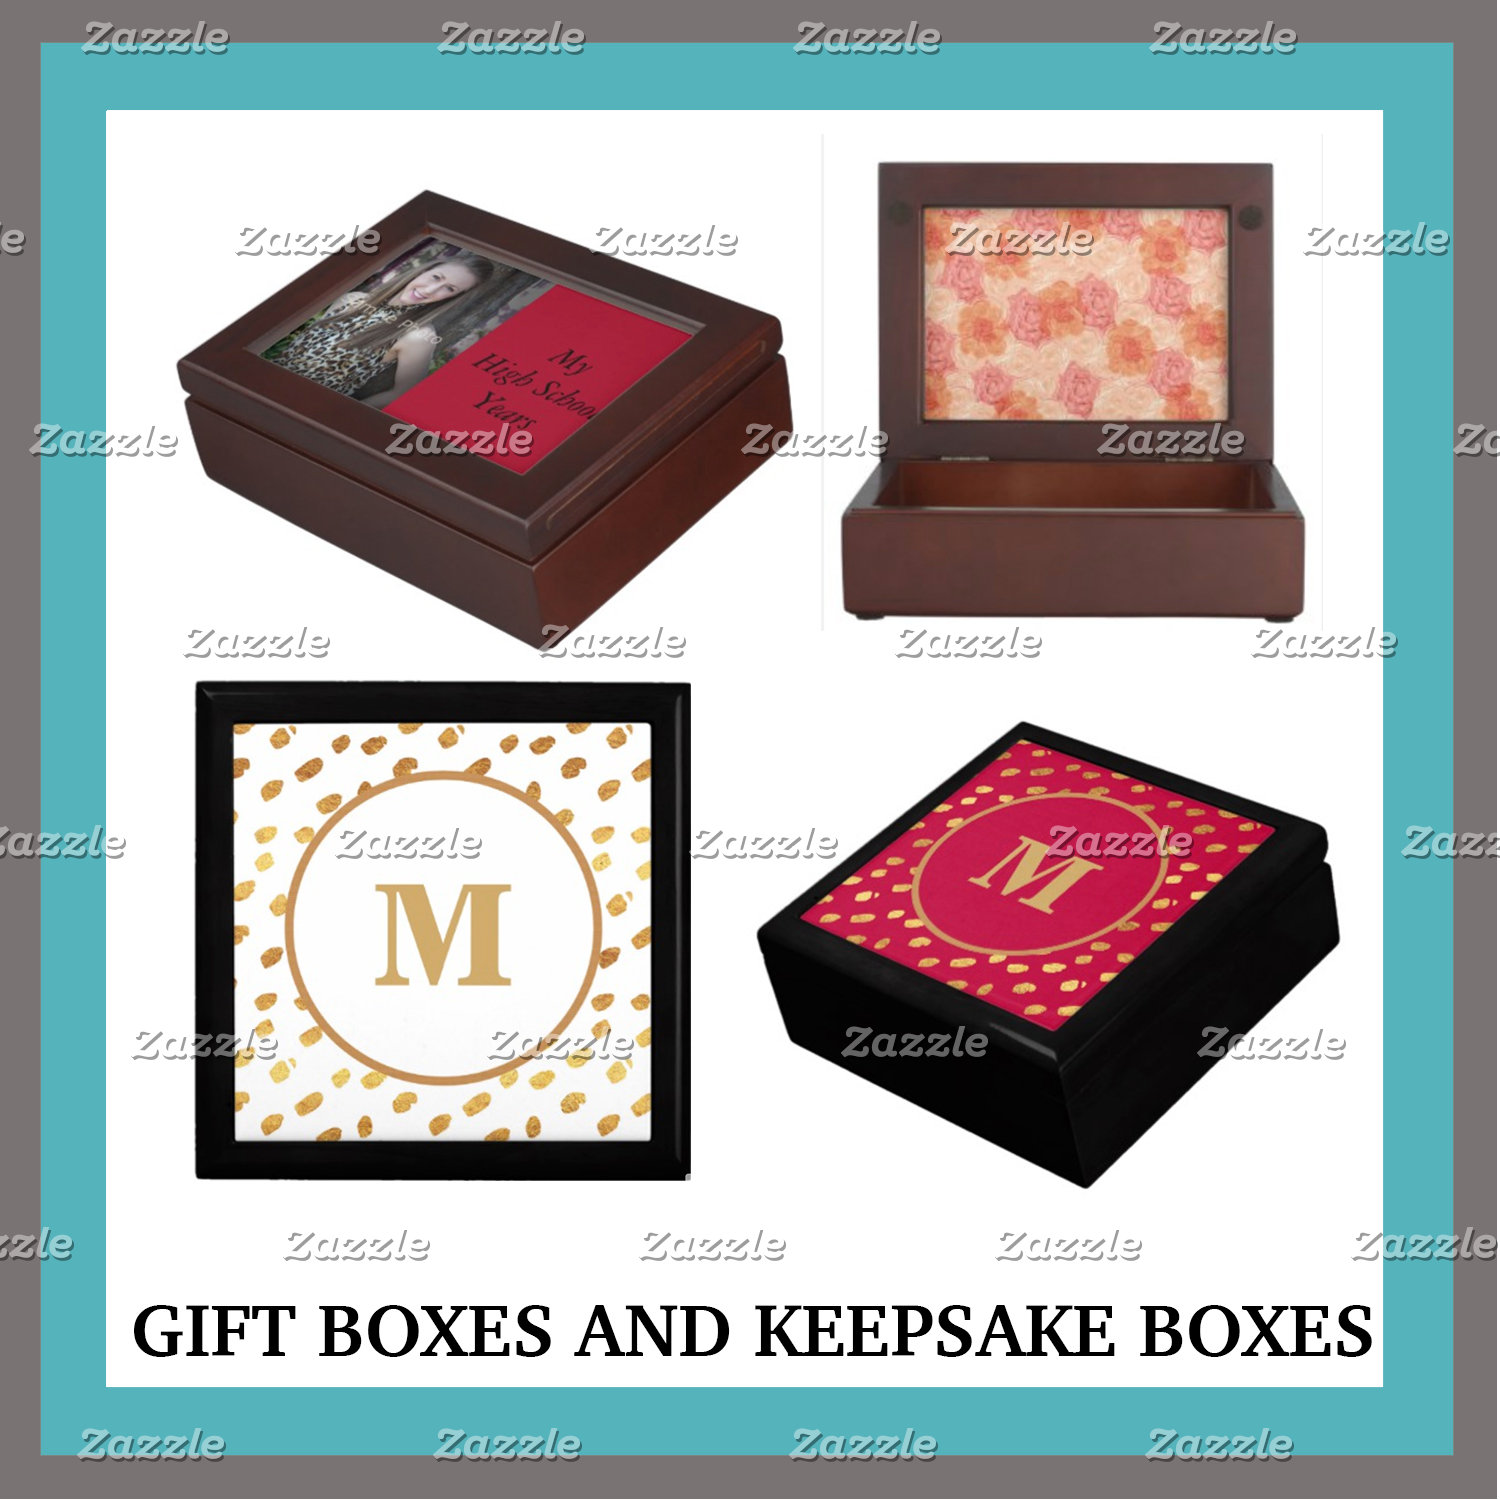 Gift Boxes and Keepsake Boxes